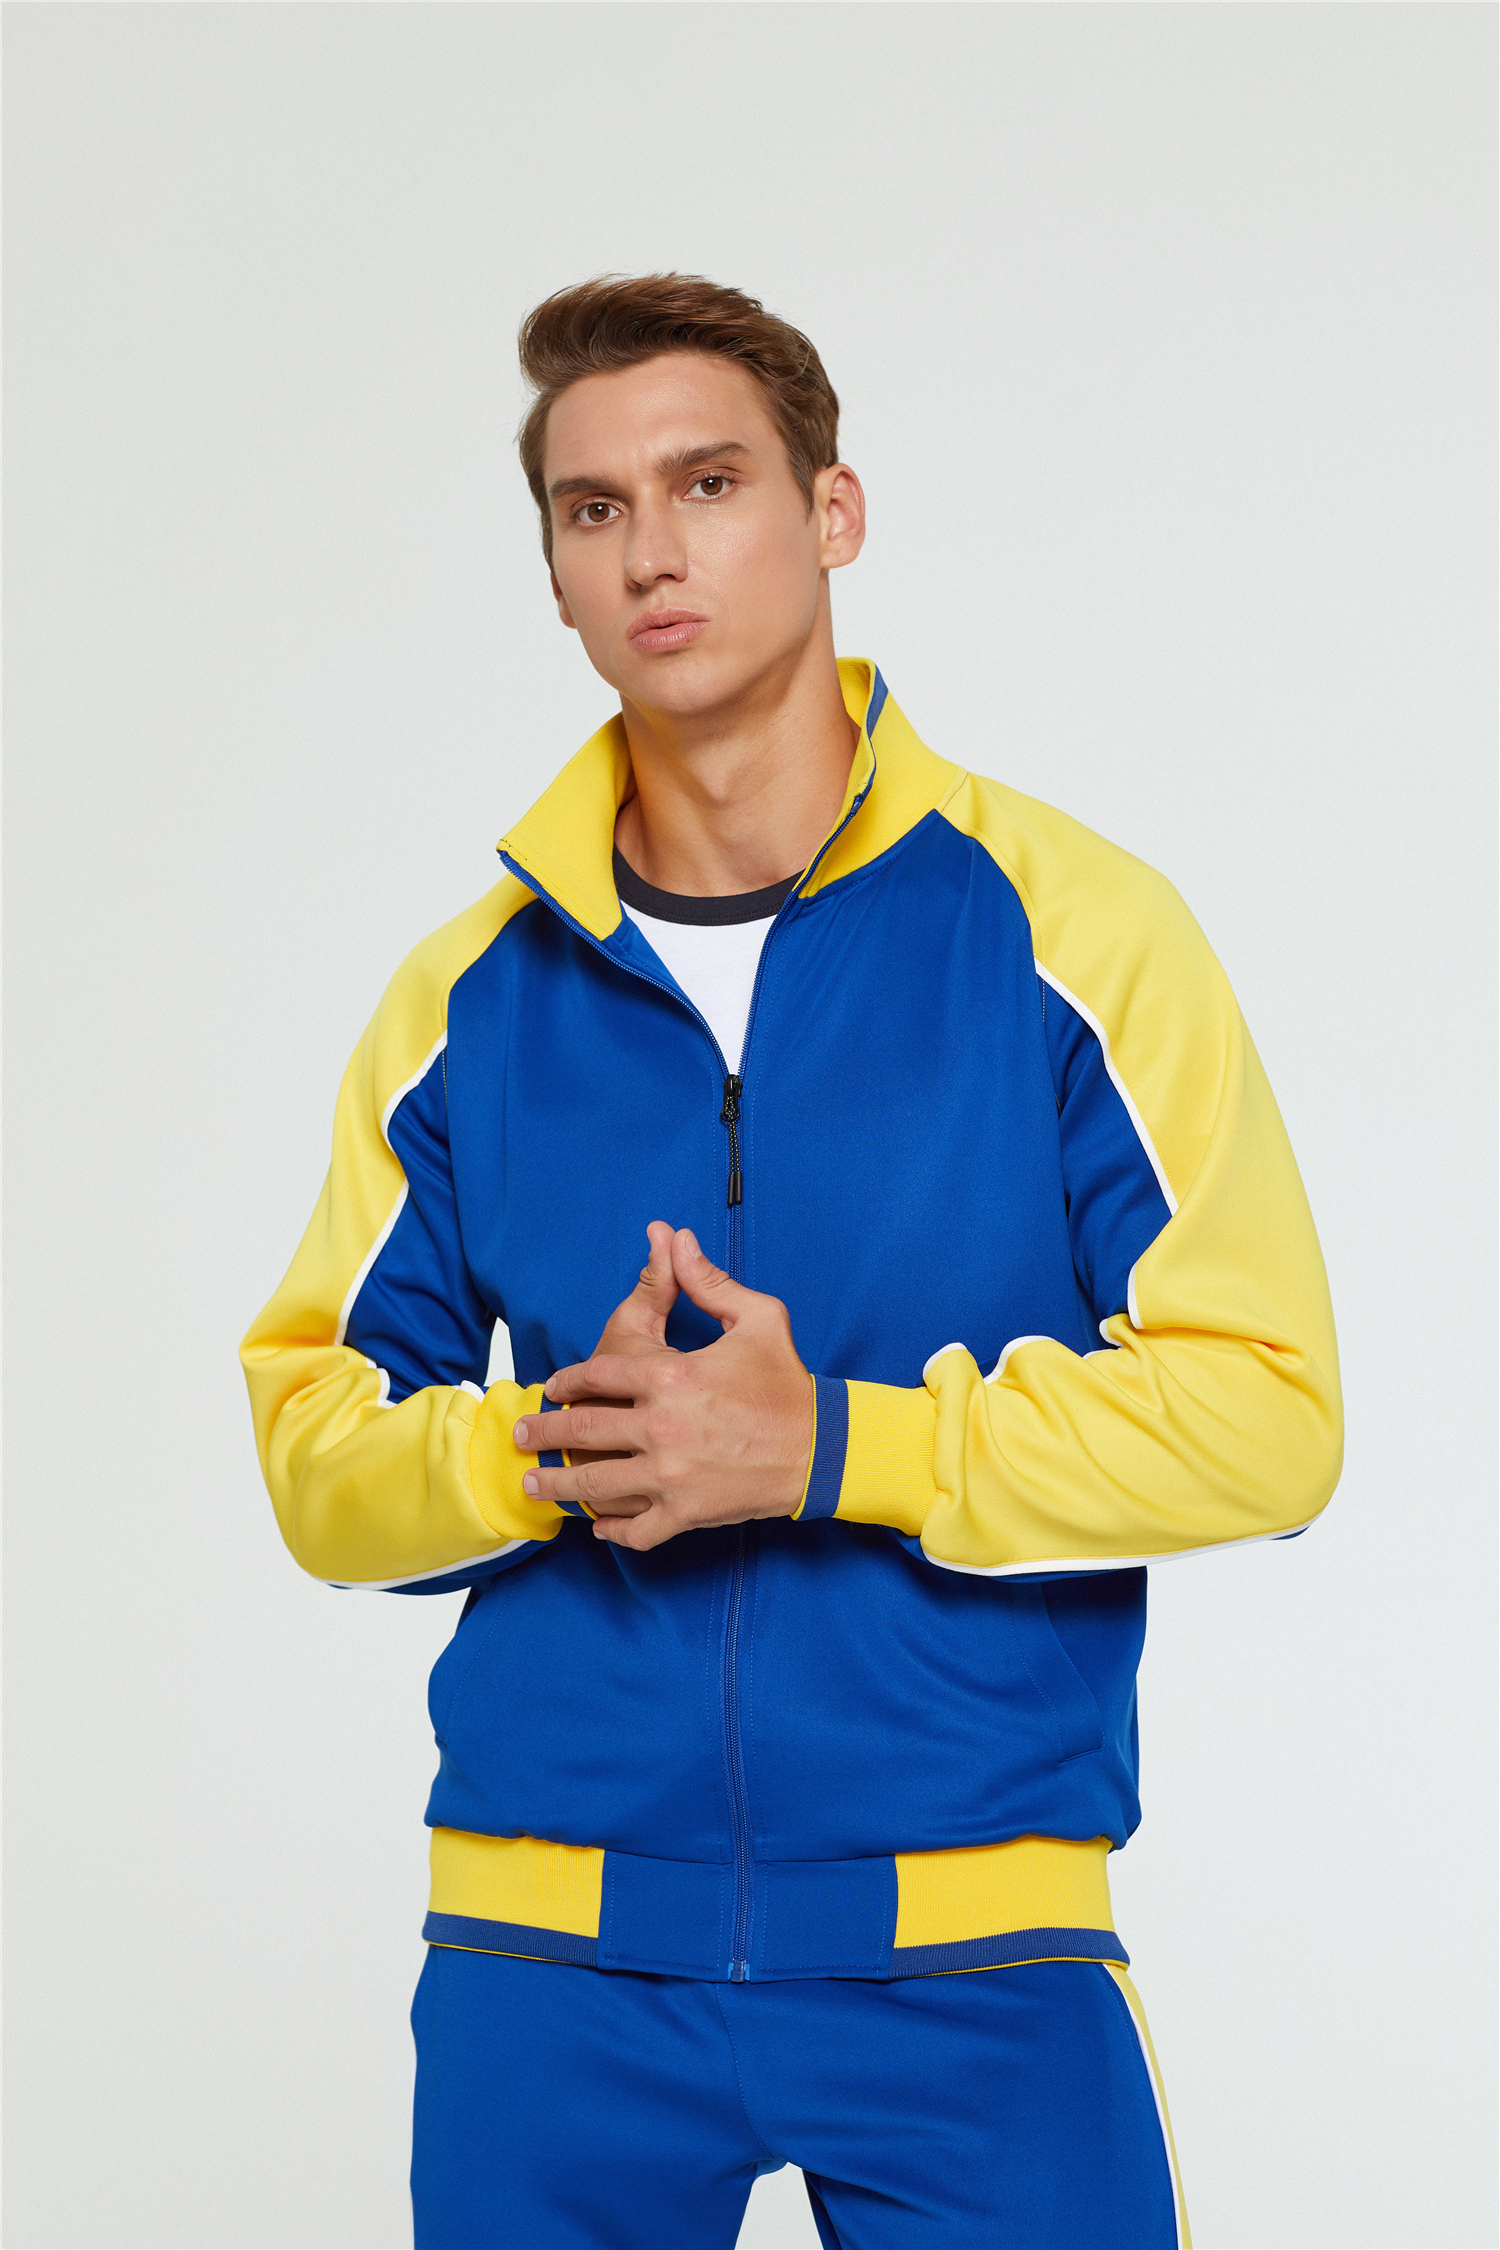 2020 men's autumn and winter new long-sleeved sports two-piece zipper cardigan fashion contrast color simple drawstring big pocket 6